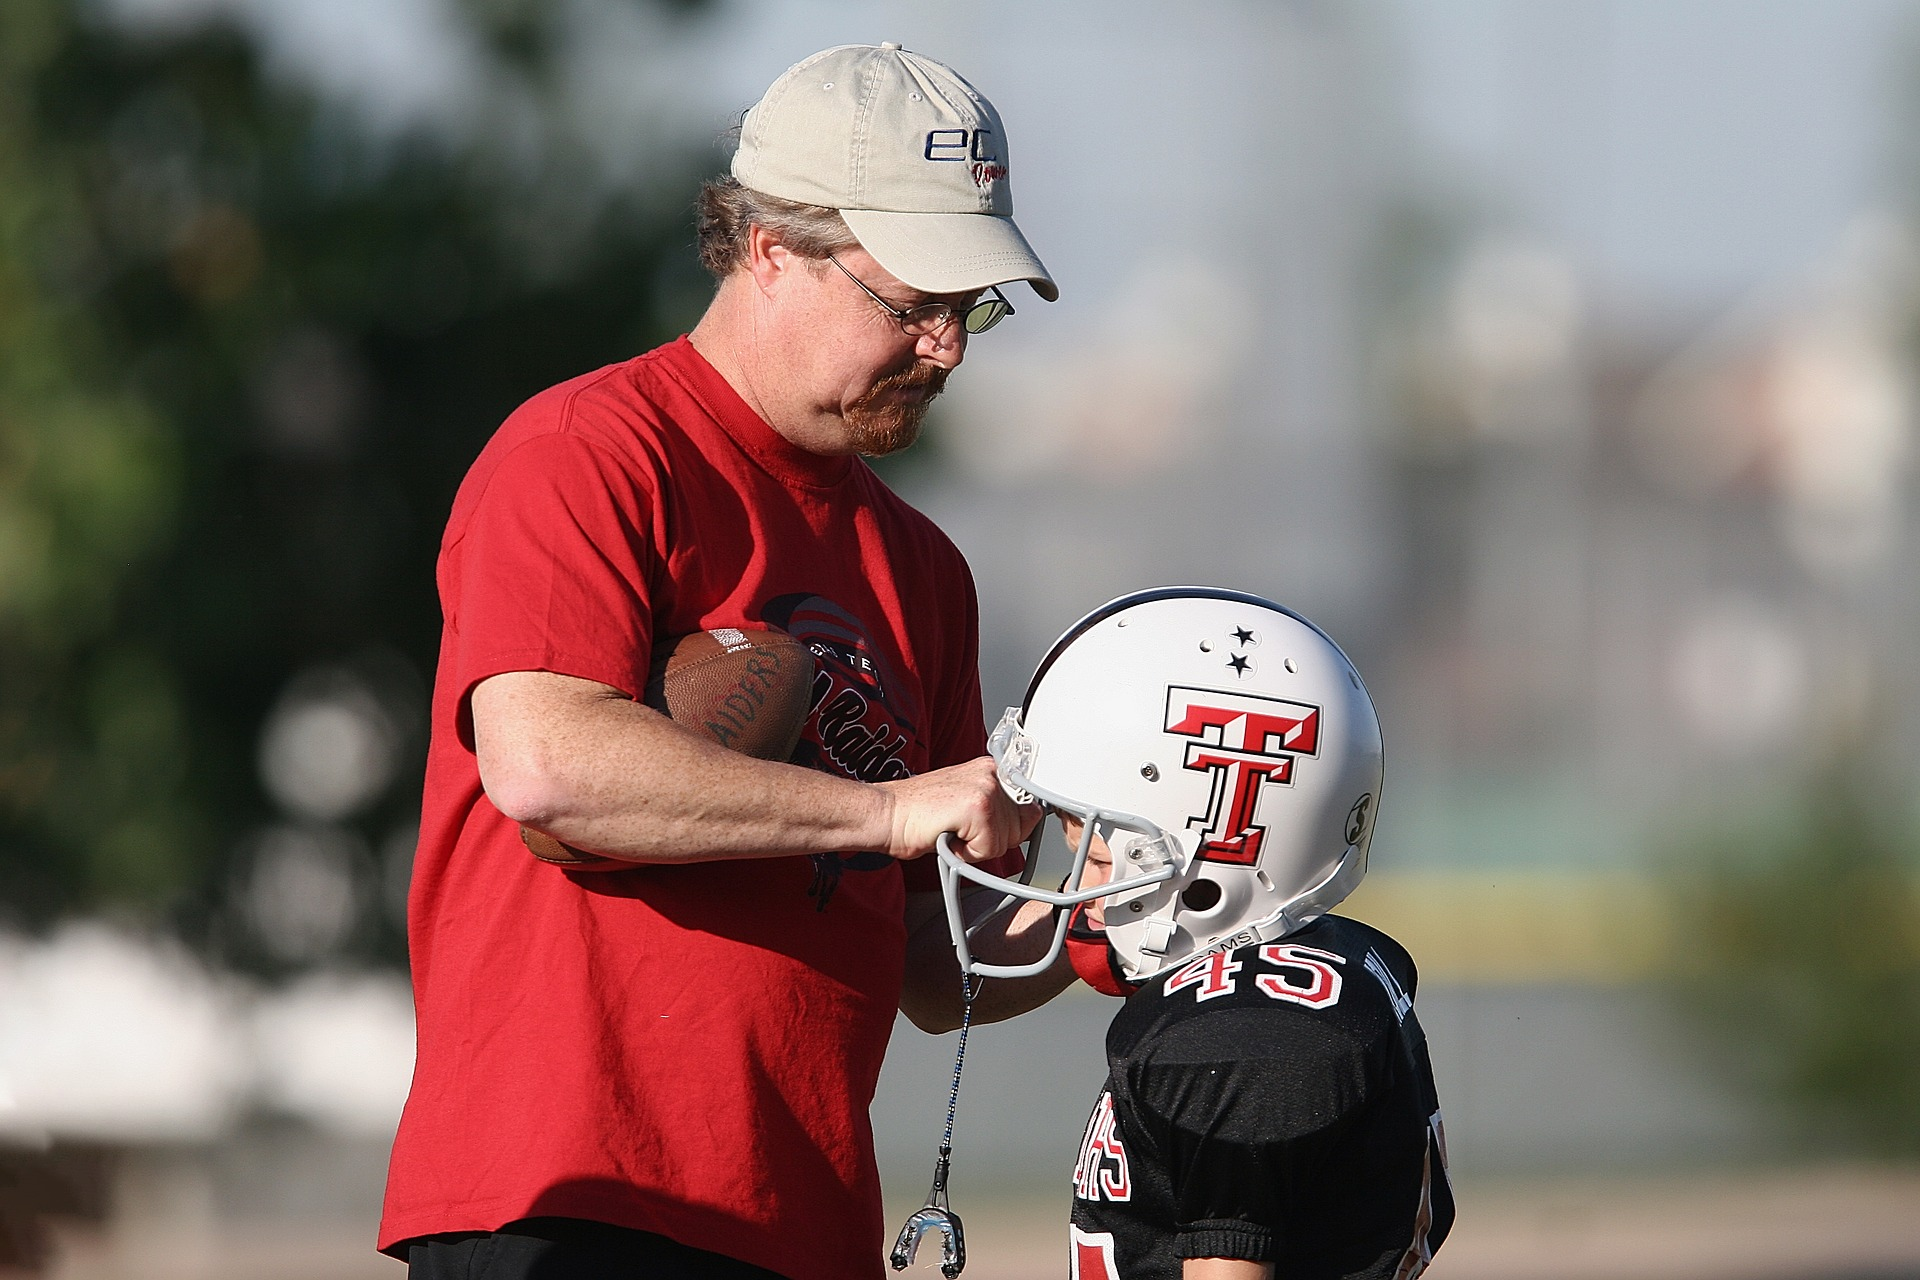 Youth football coach adjusting player's helmet